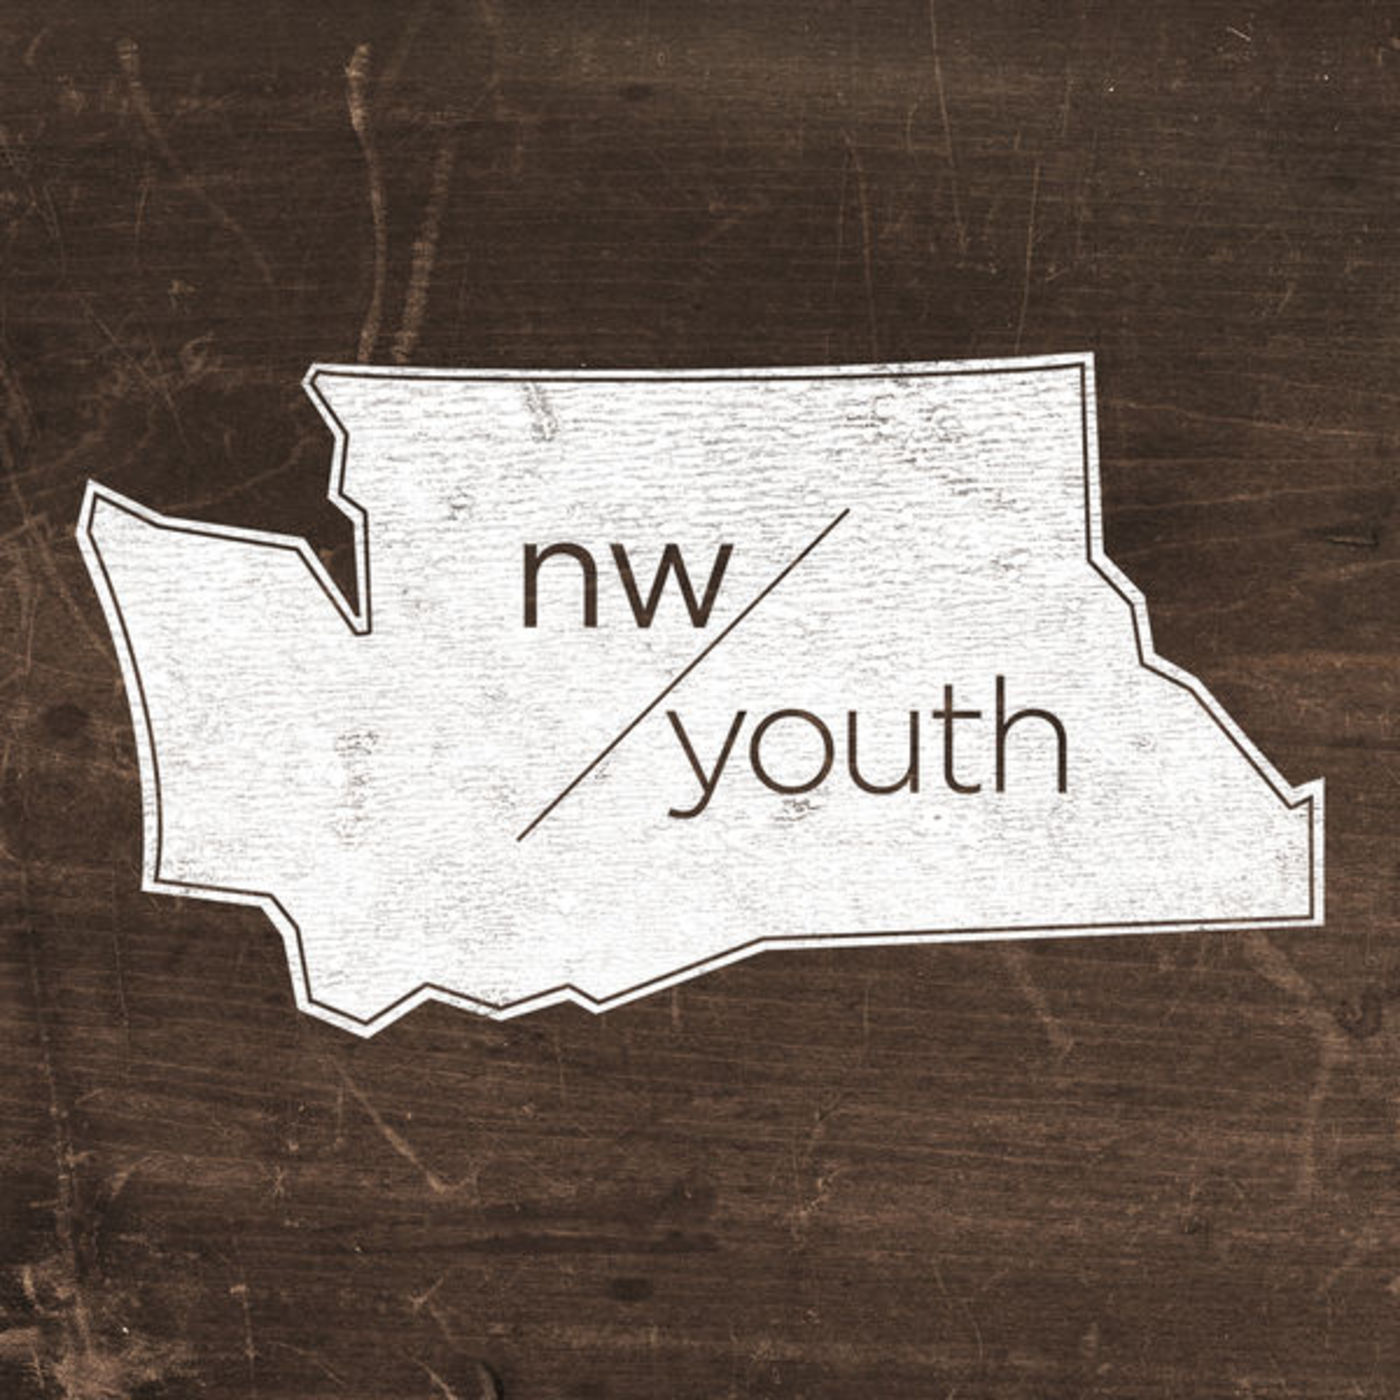 <![CDATA[NWMN Youth Ministries]]>